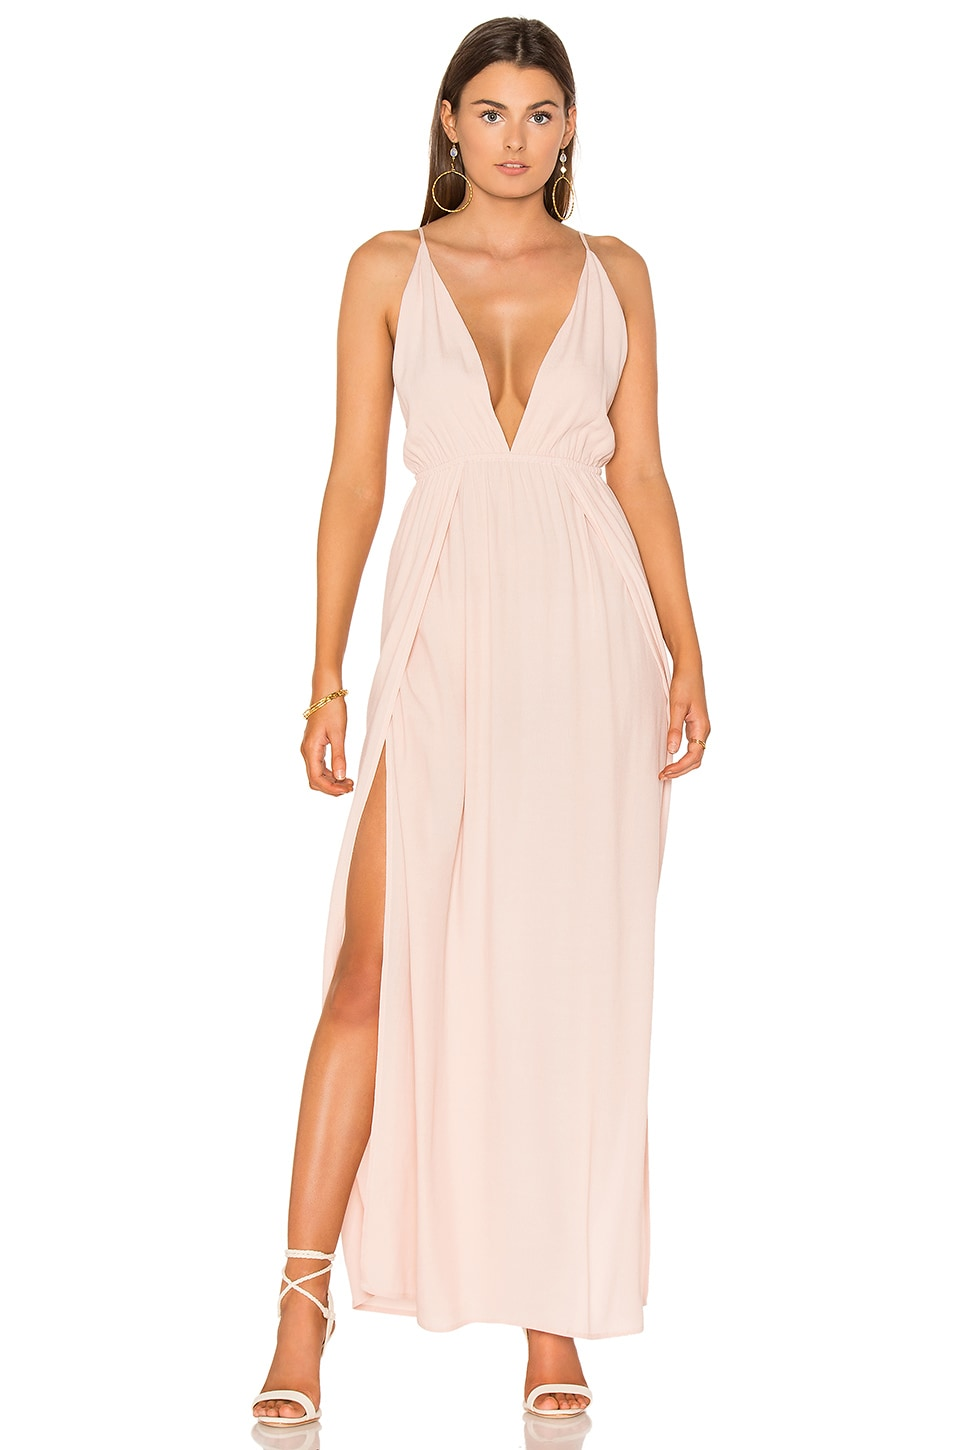 BLQ BASIQ Low Plunge Maxi Dress in Pale Blush